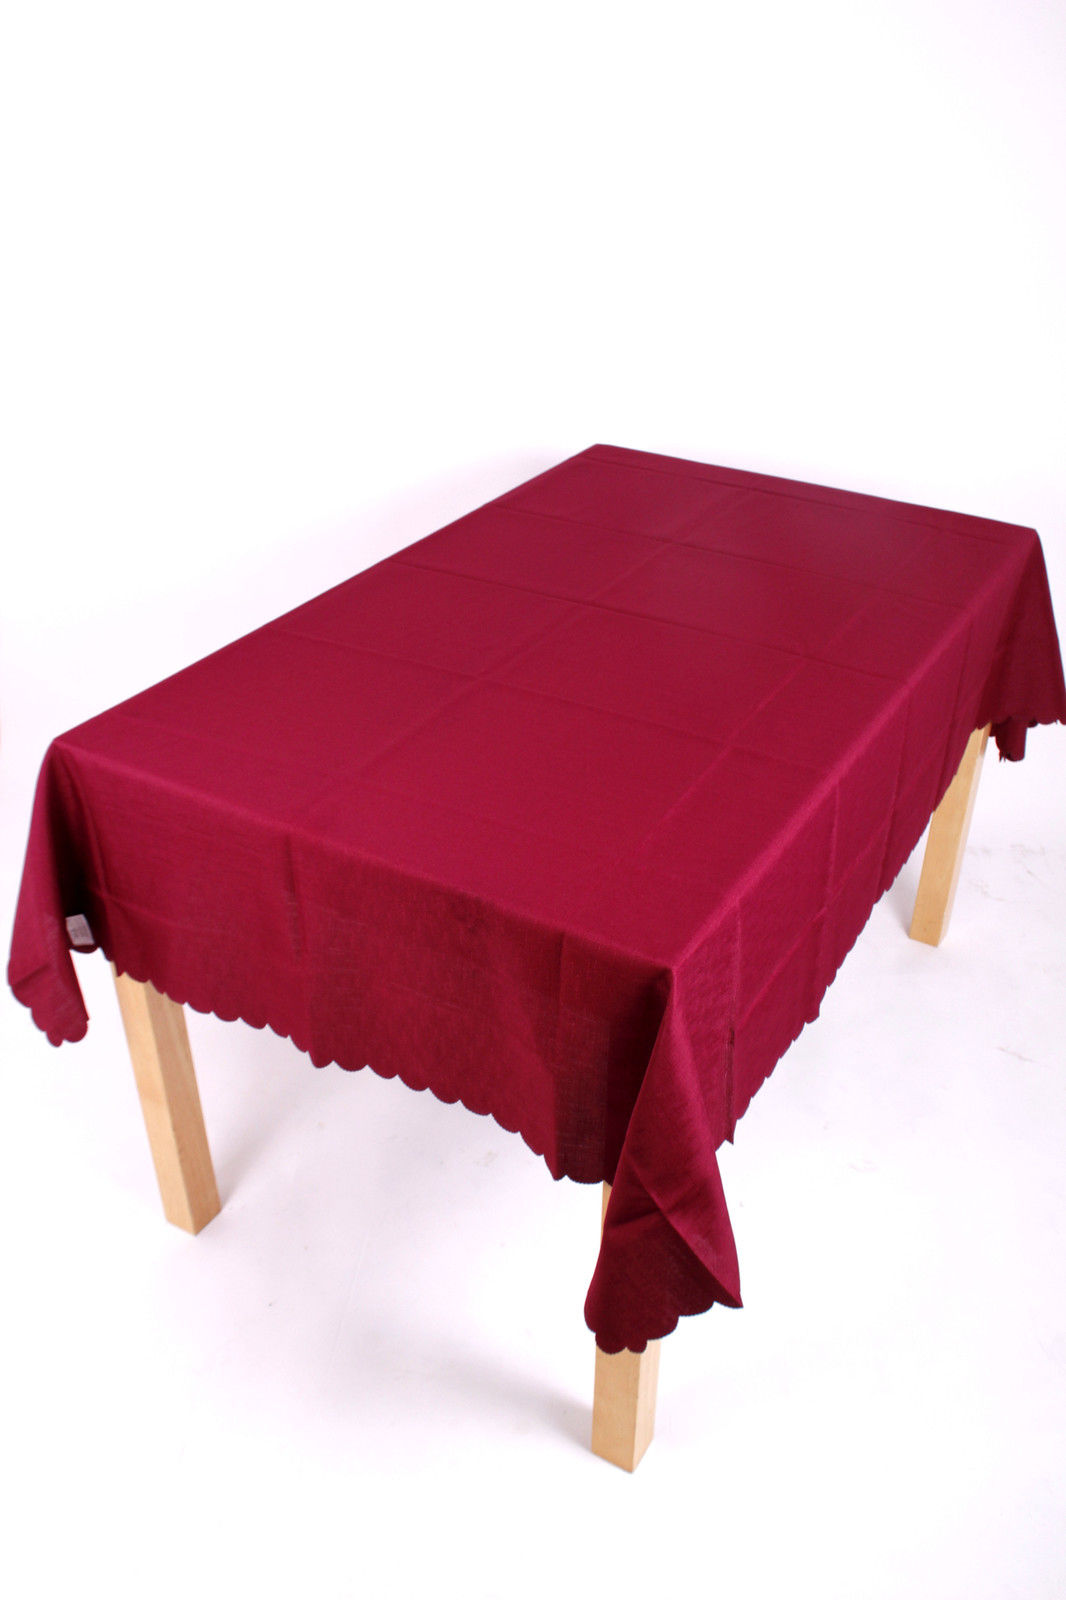 Shell Tablecloth Burgundy 137x229cm Oval